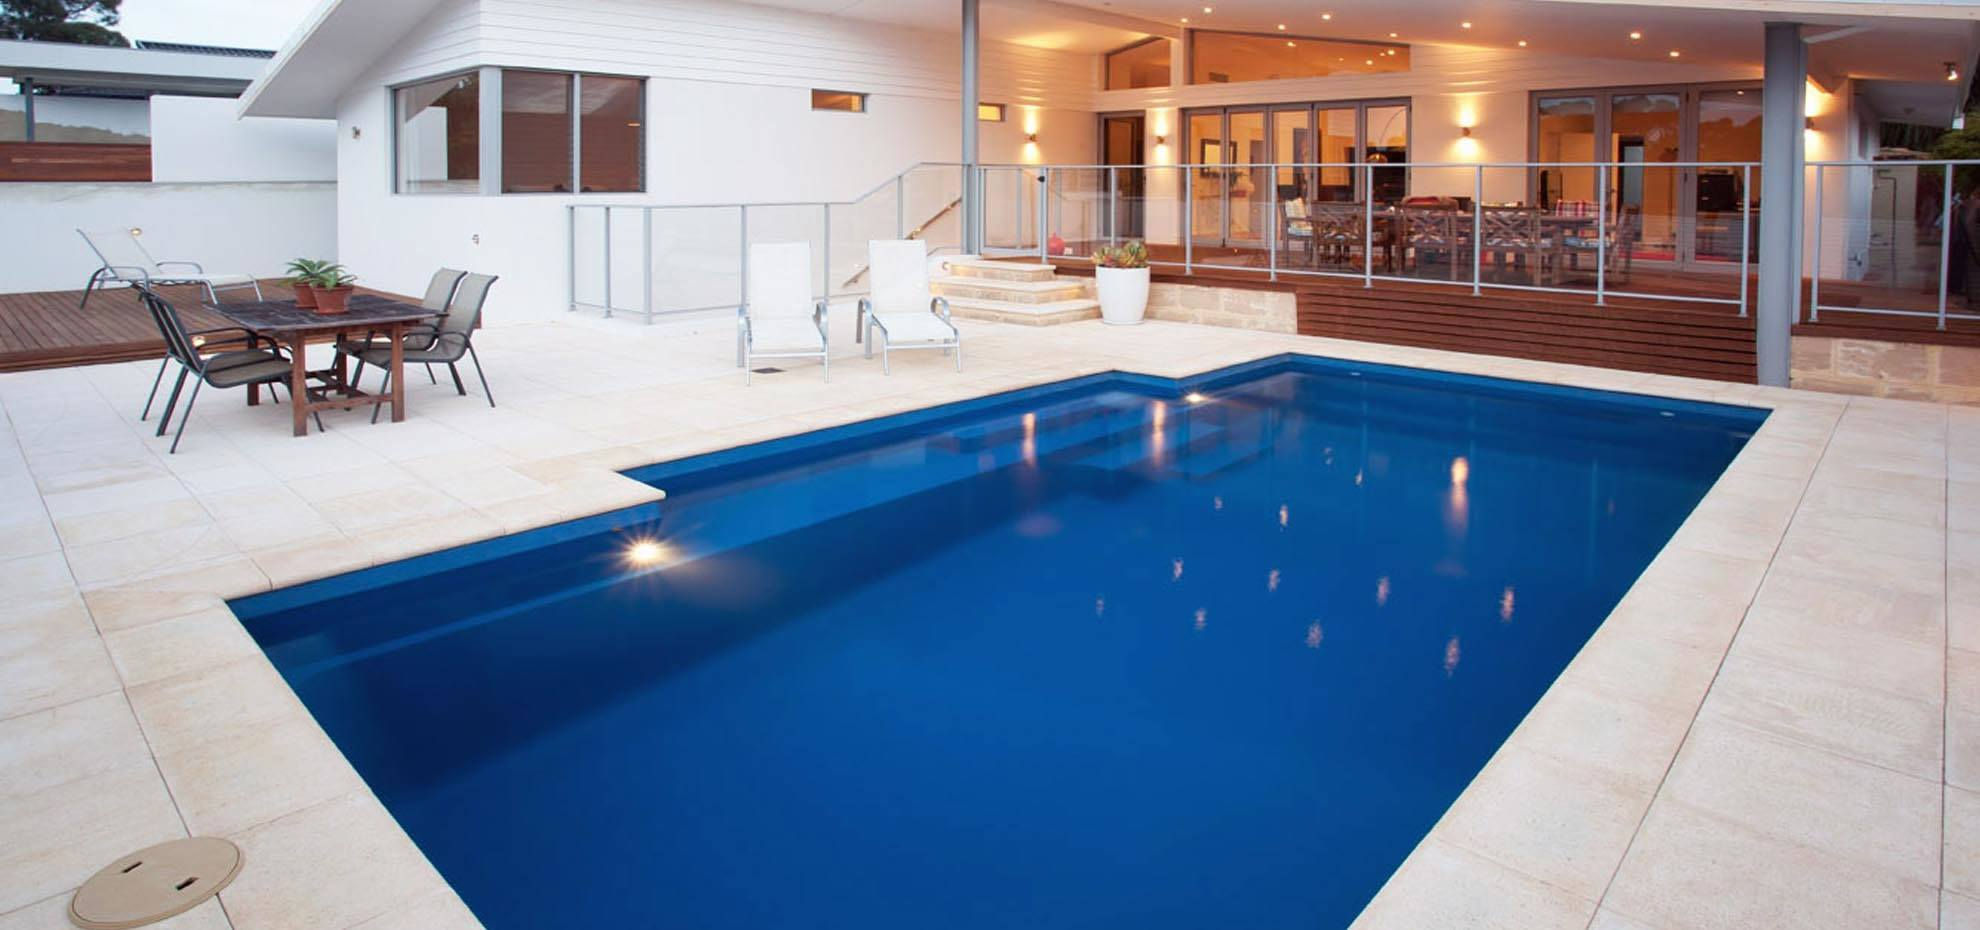 Elegance fibreglass pool design with coping by Leisure Pools